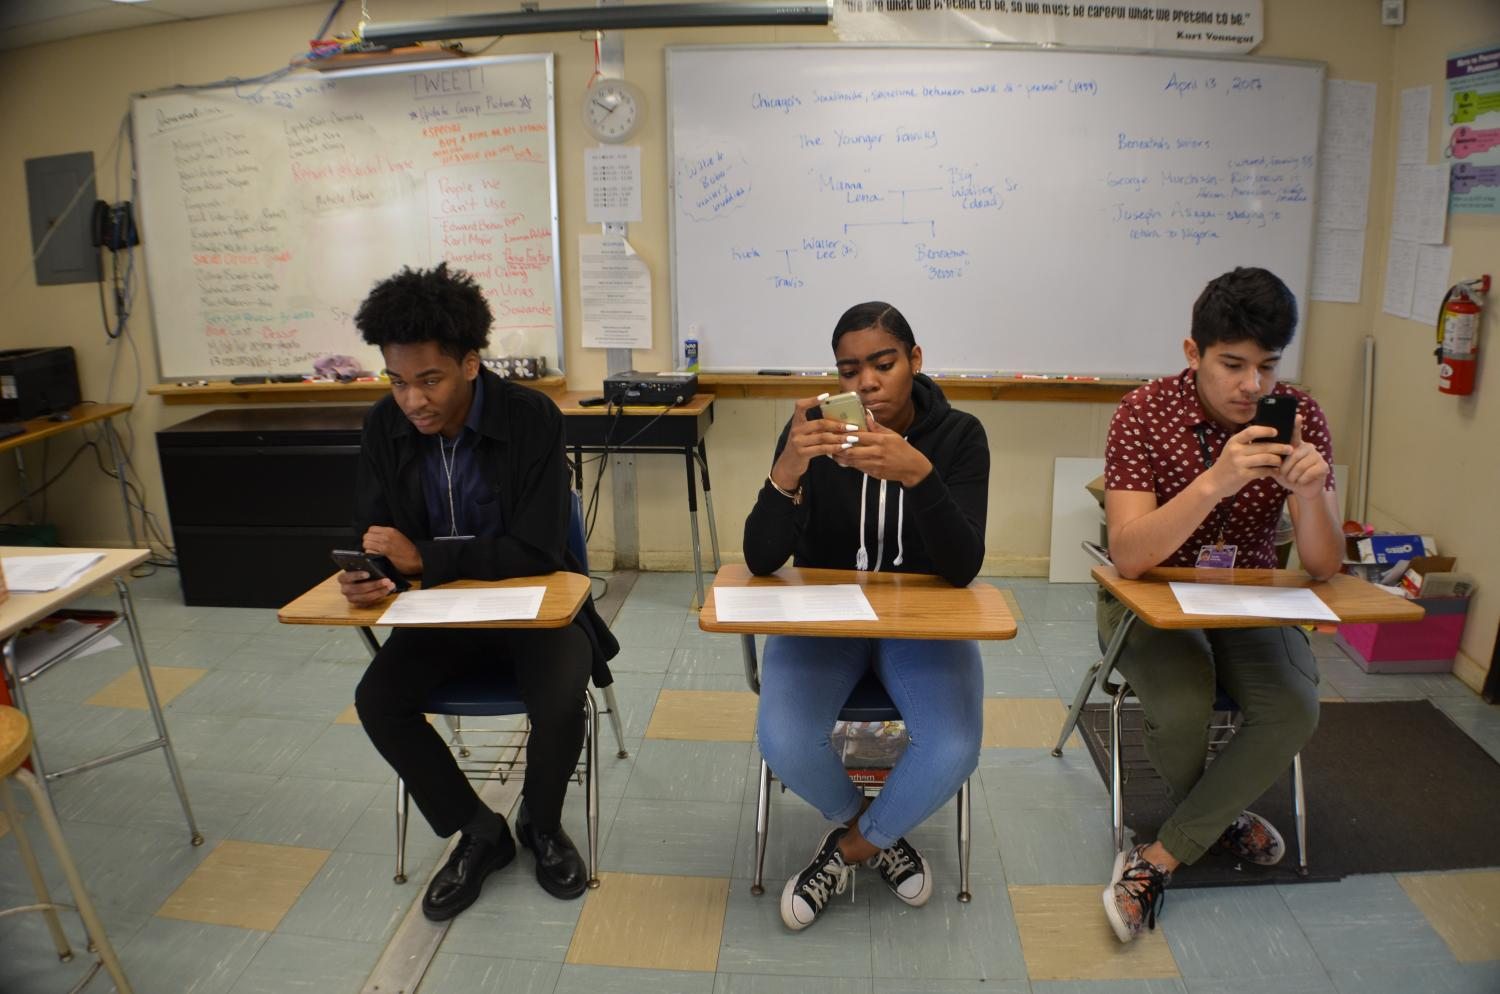 A staged demonstration of ERHS students using their phones.